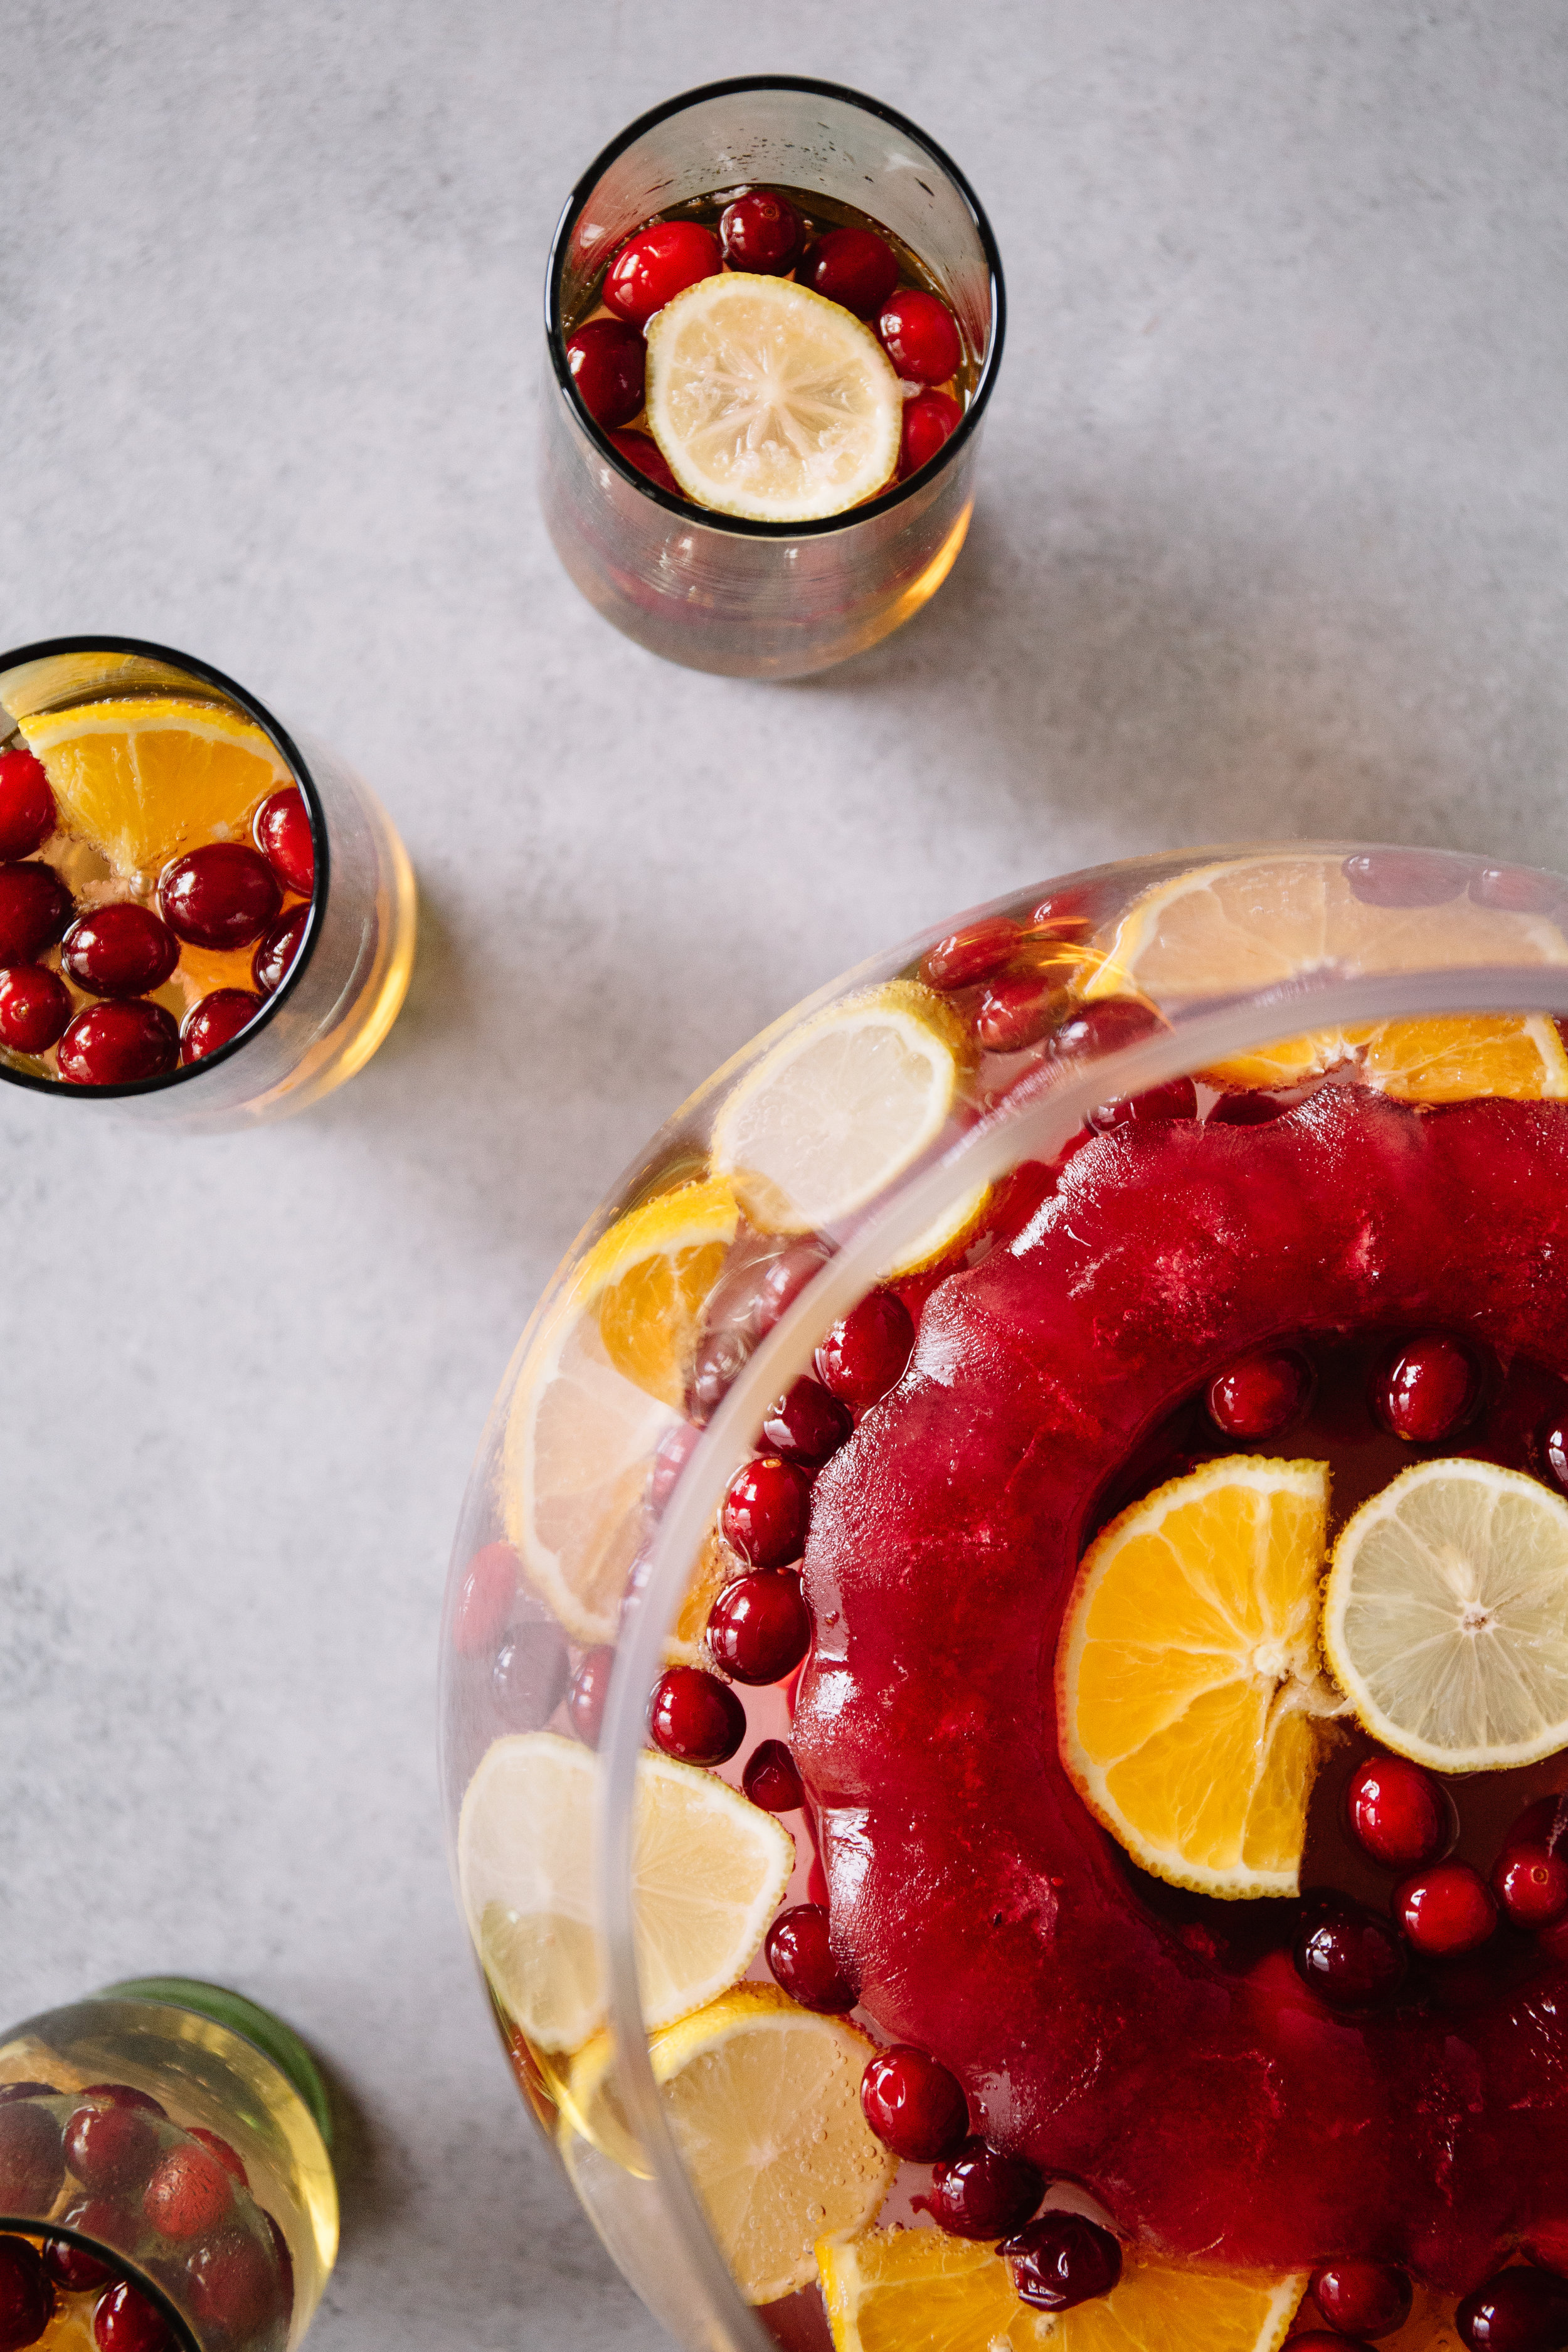 FOODSTUFF_CRANBERRY-ICE_PINTEREST-2.jpg